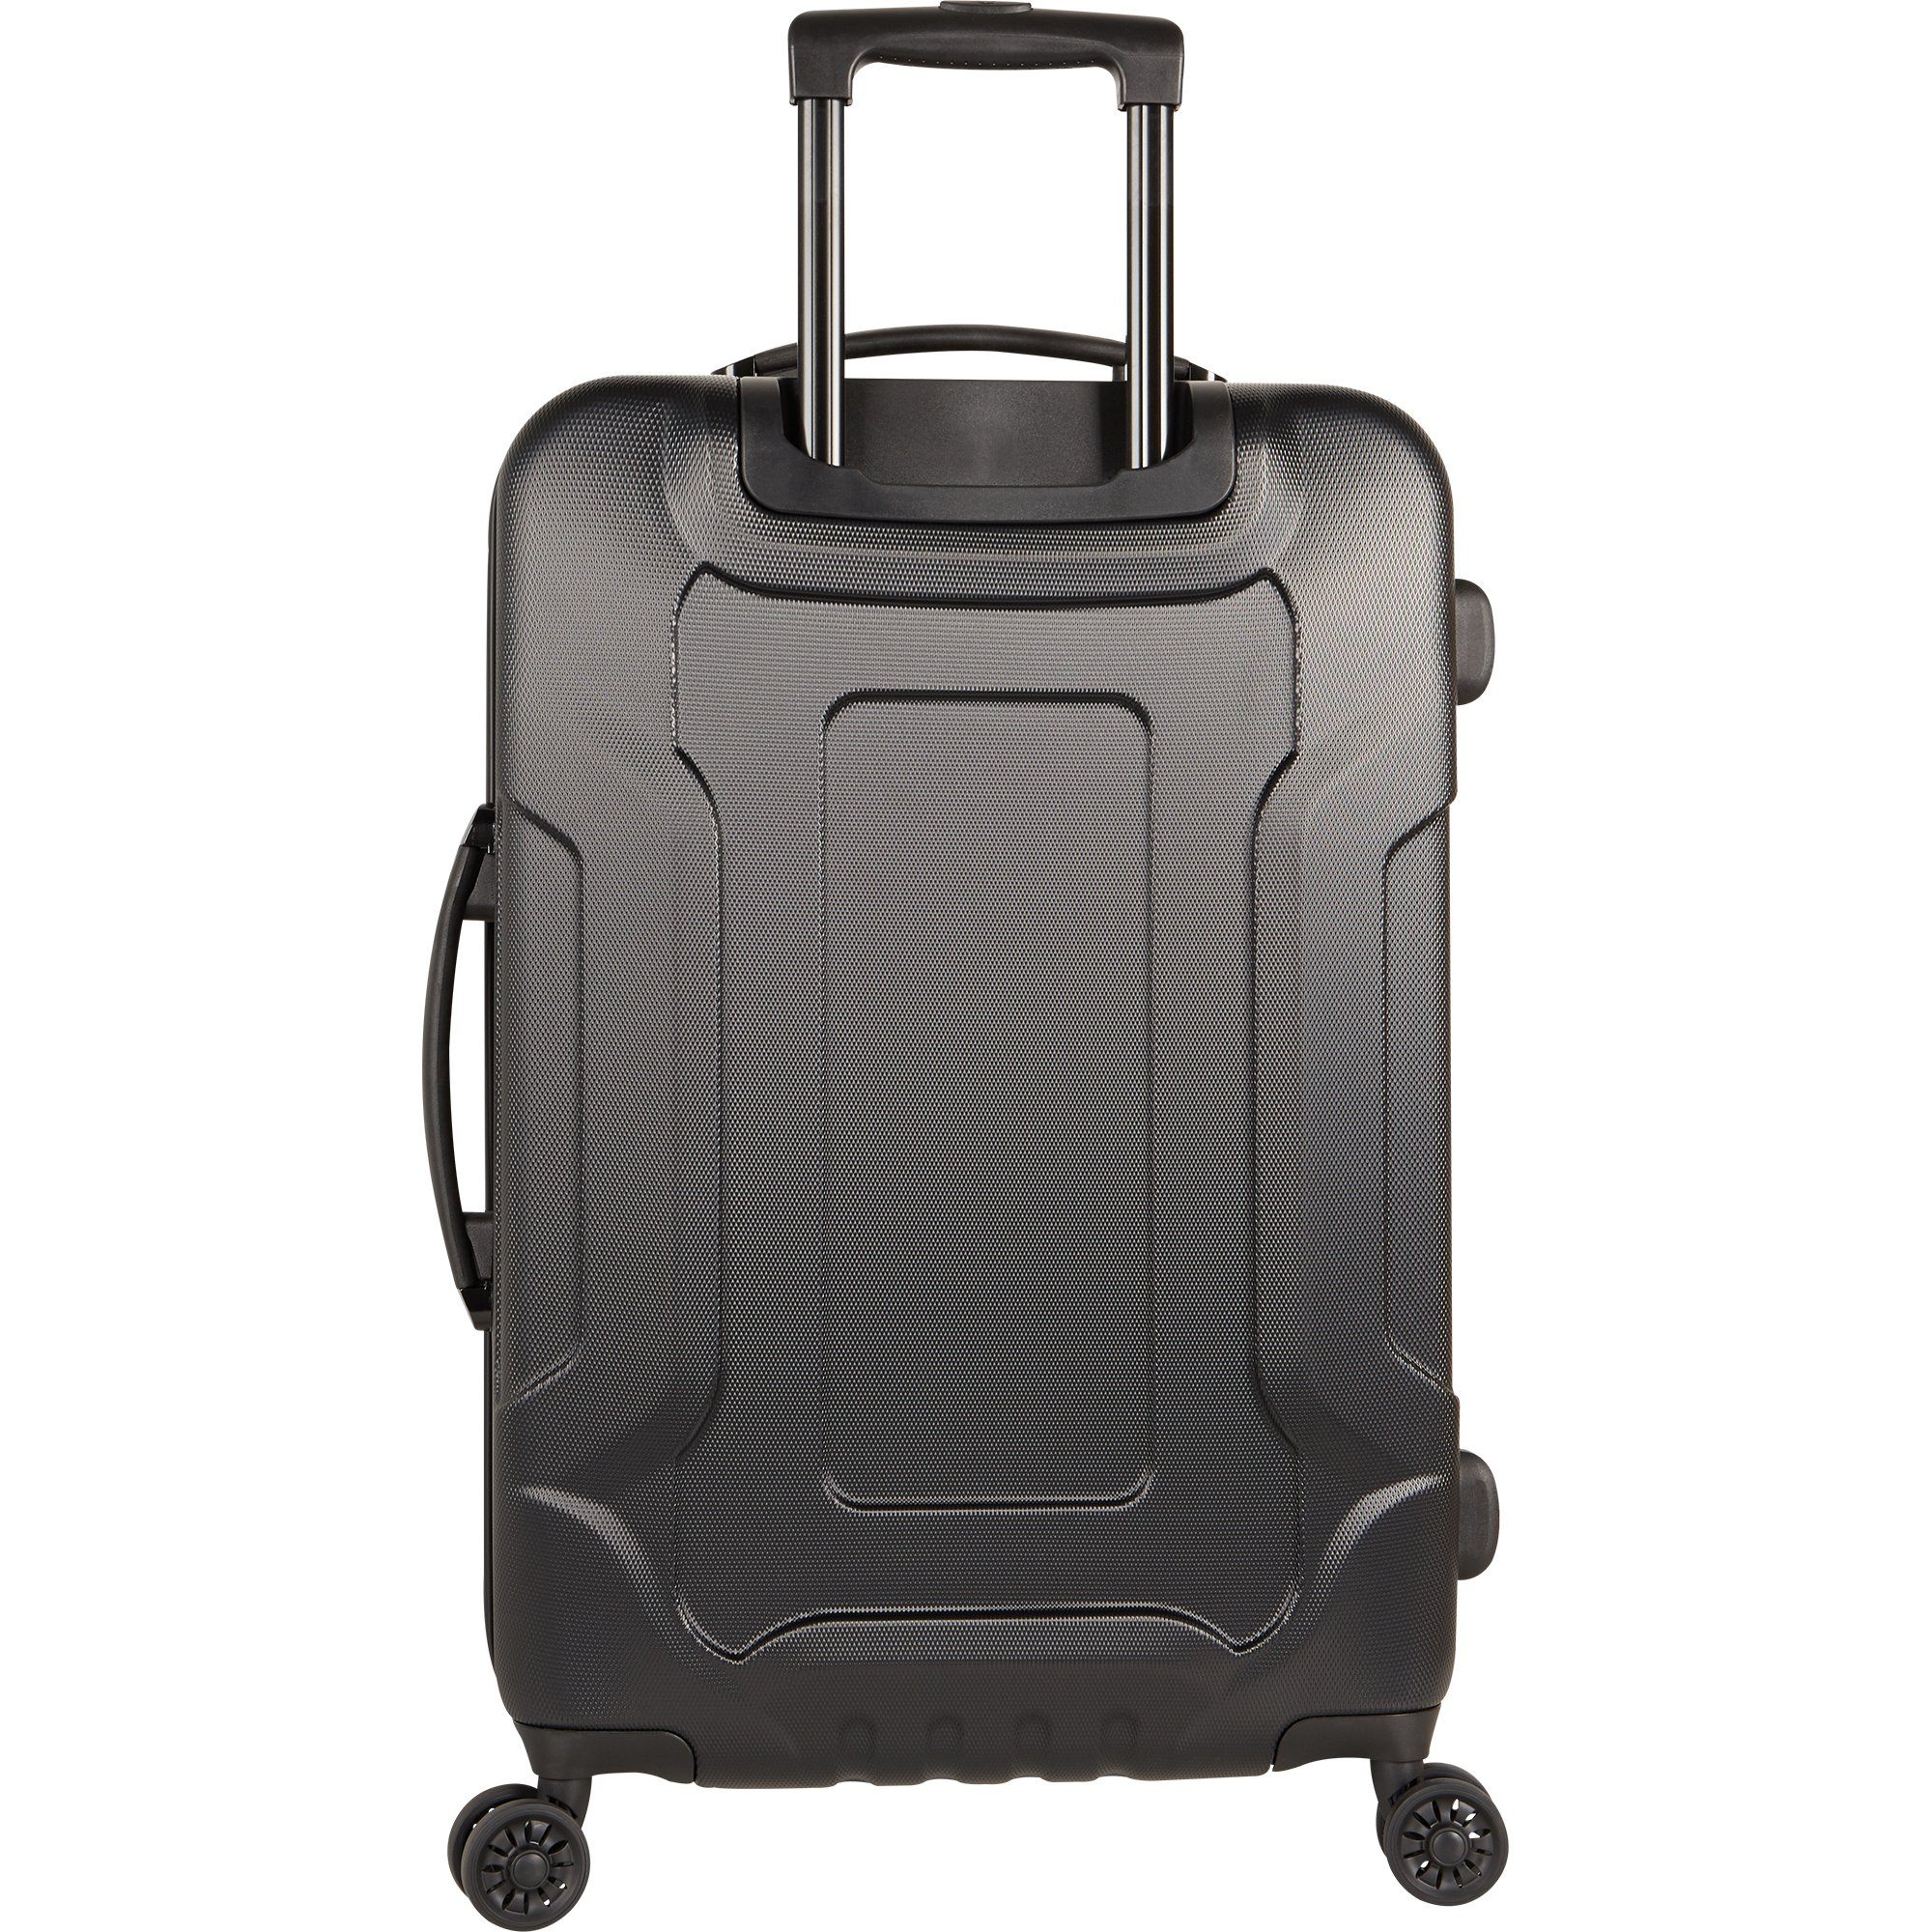 pre order sneakers for cheap offer discounts Timberland Stony Brook 3 Piece Hardside Spinner Luggage Set ...